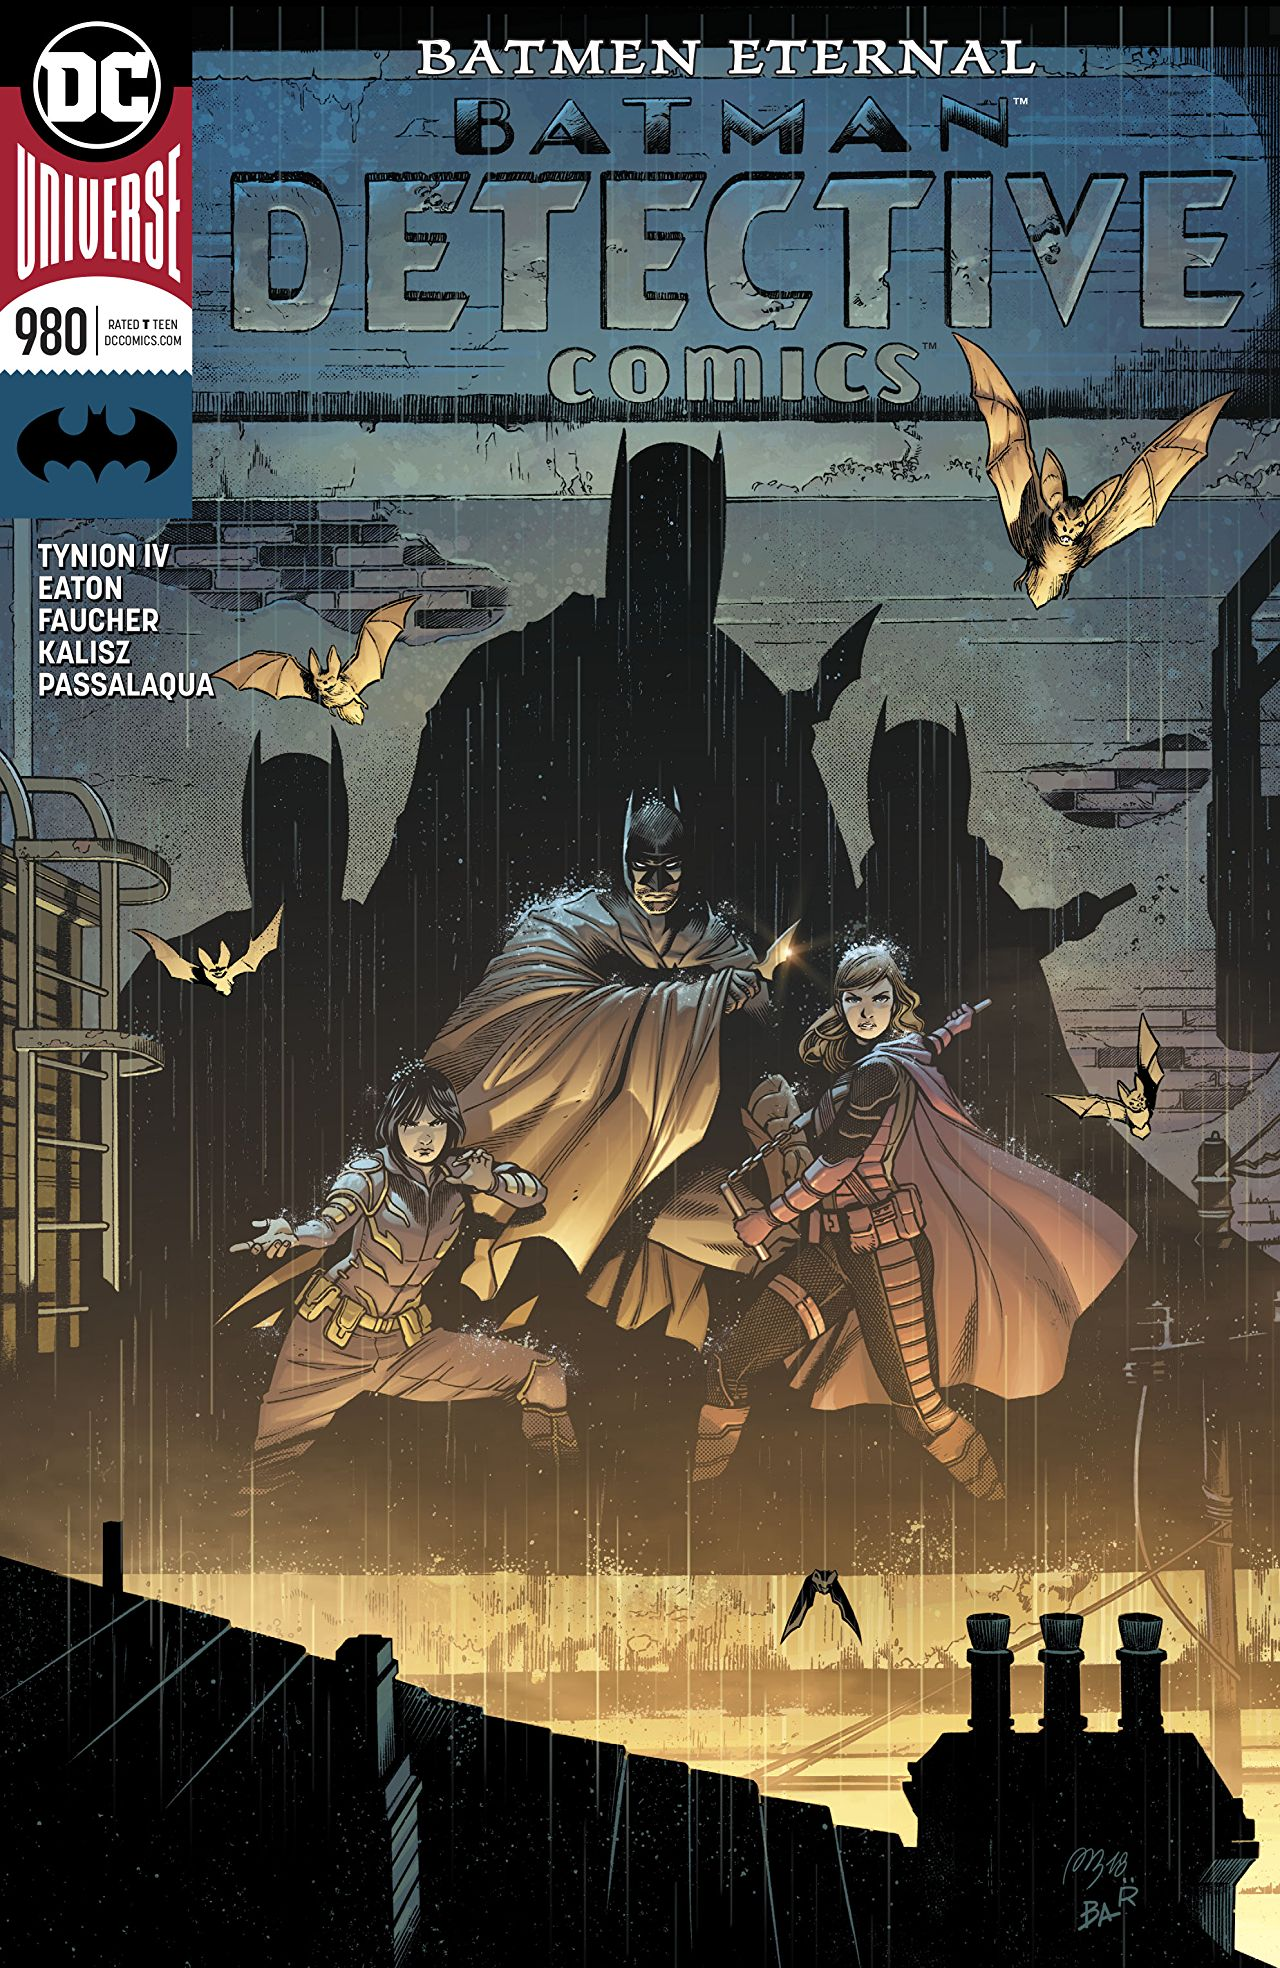 Batman: Detective Comics #980 cover by Alvaro Martinez, Raul Fernandez, and Brad Anderson